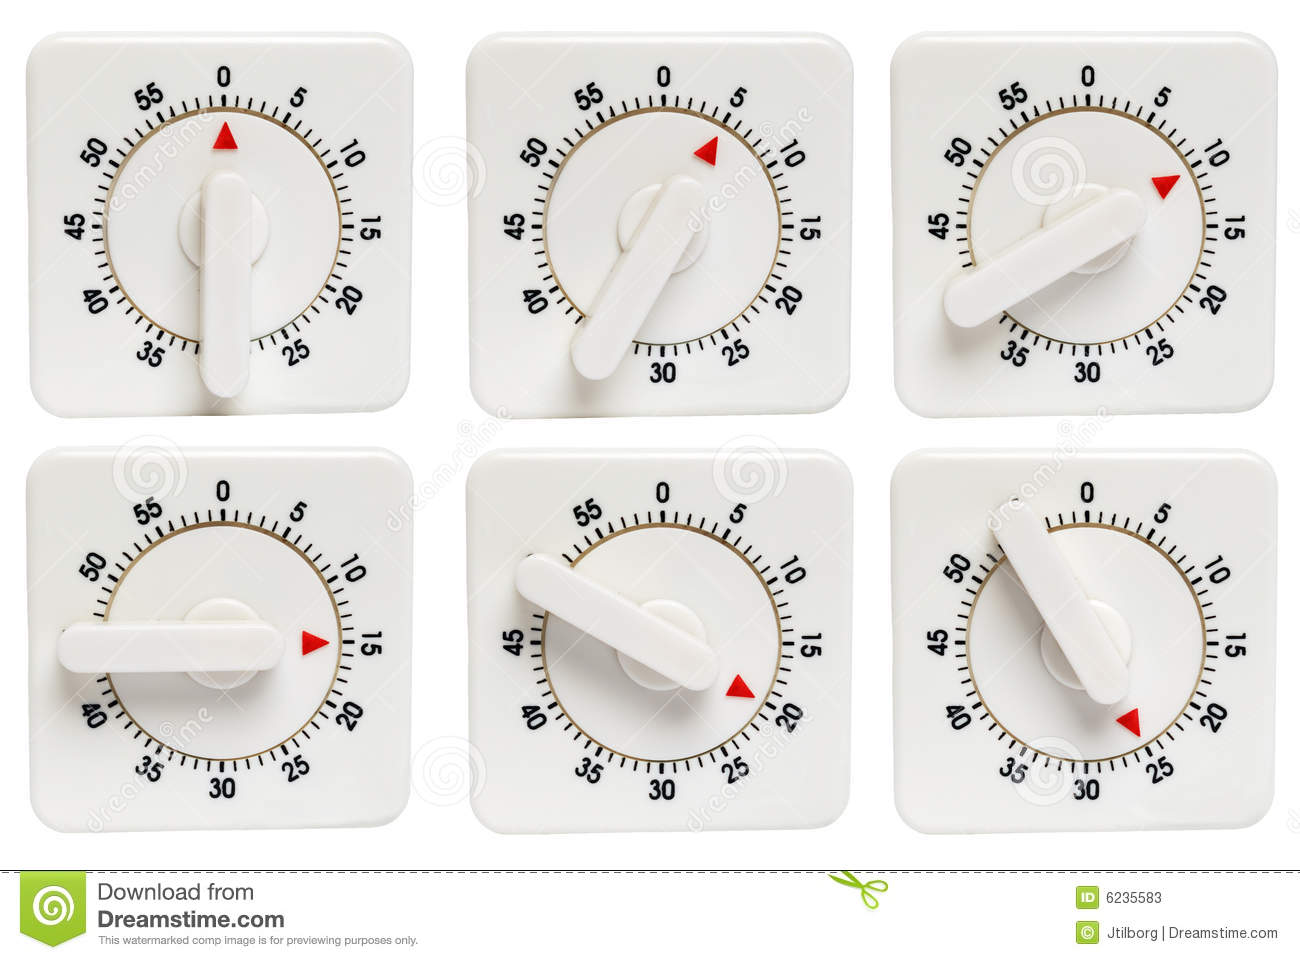 Kitchen Timer 0 To 25 Minutes Stock Image - Image of object